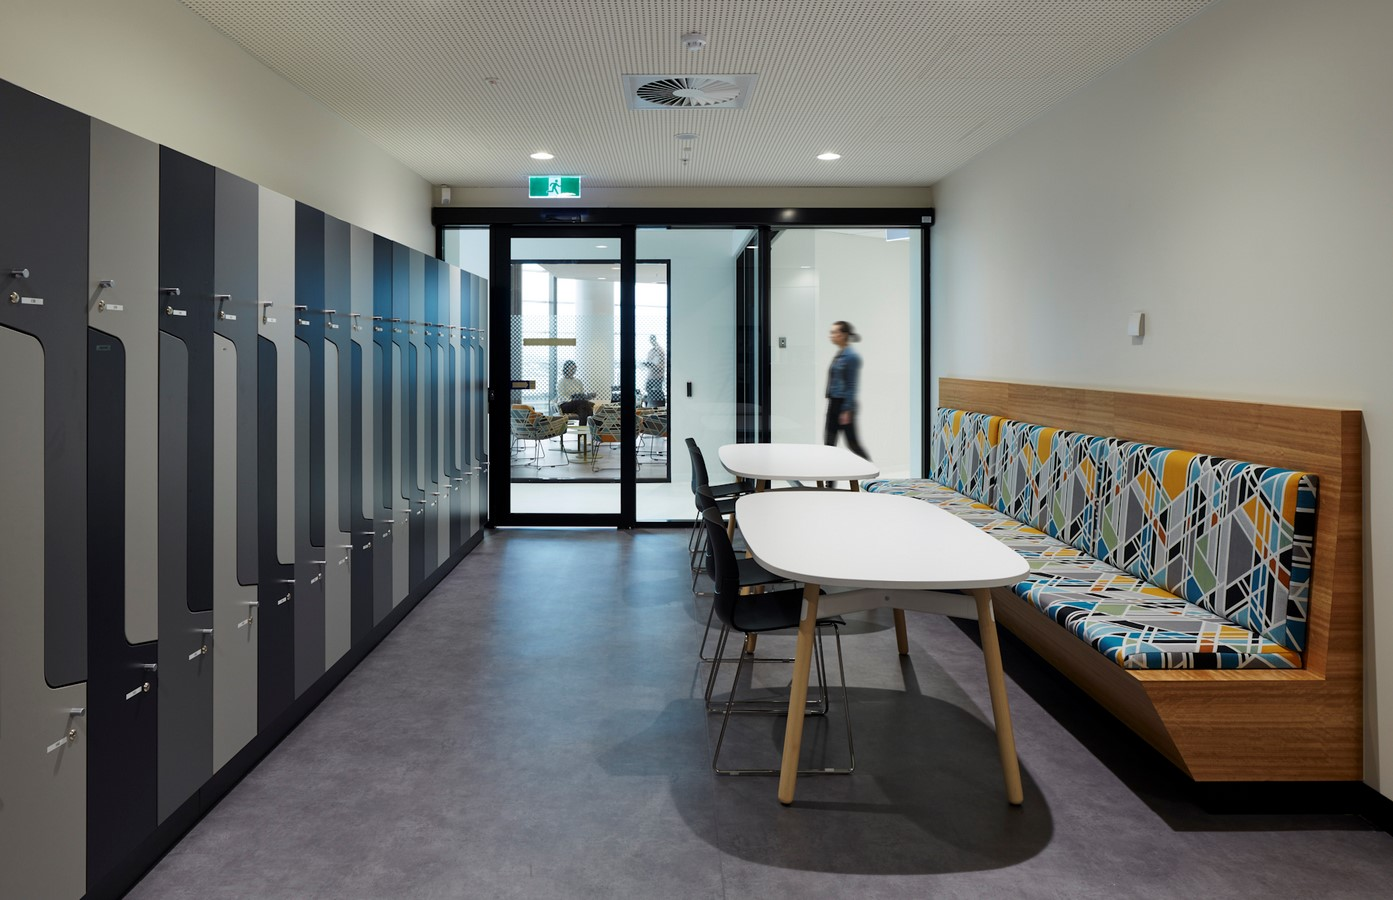 University of Adelaide SA Dental Service Hospital by DesignInc and Cox Architecture - sheet1